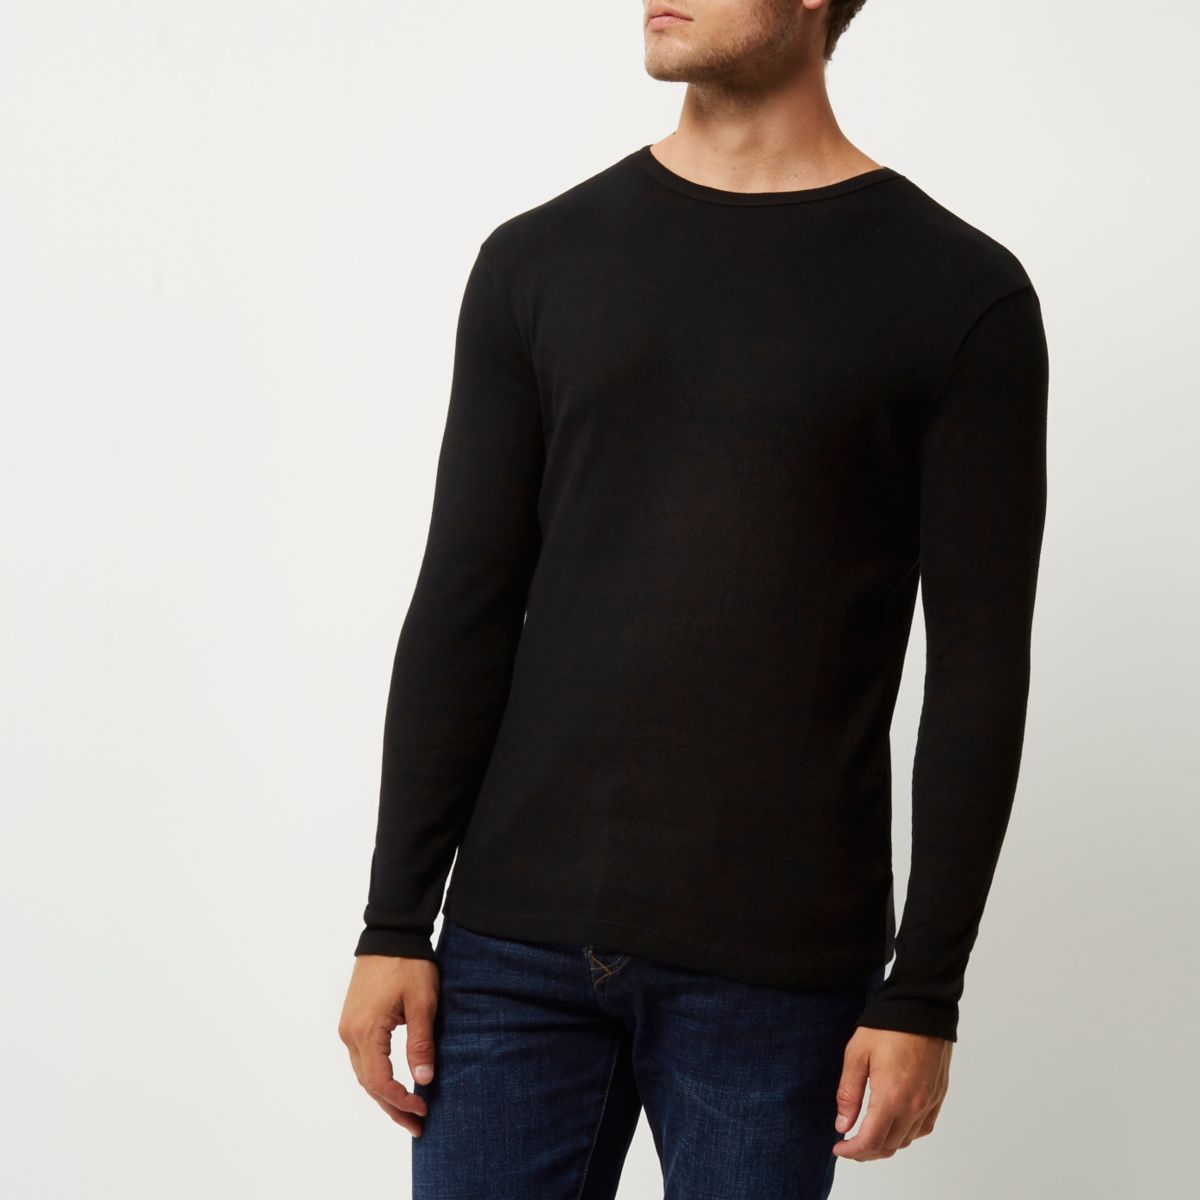 Black Ribbed Slim Fit Long Sleeve T Shirt Long Sleeve T